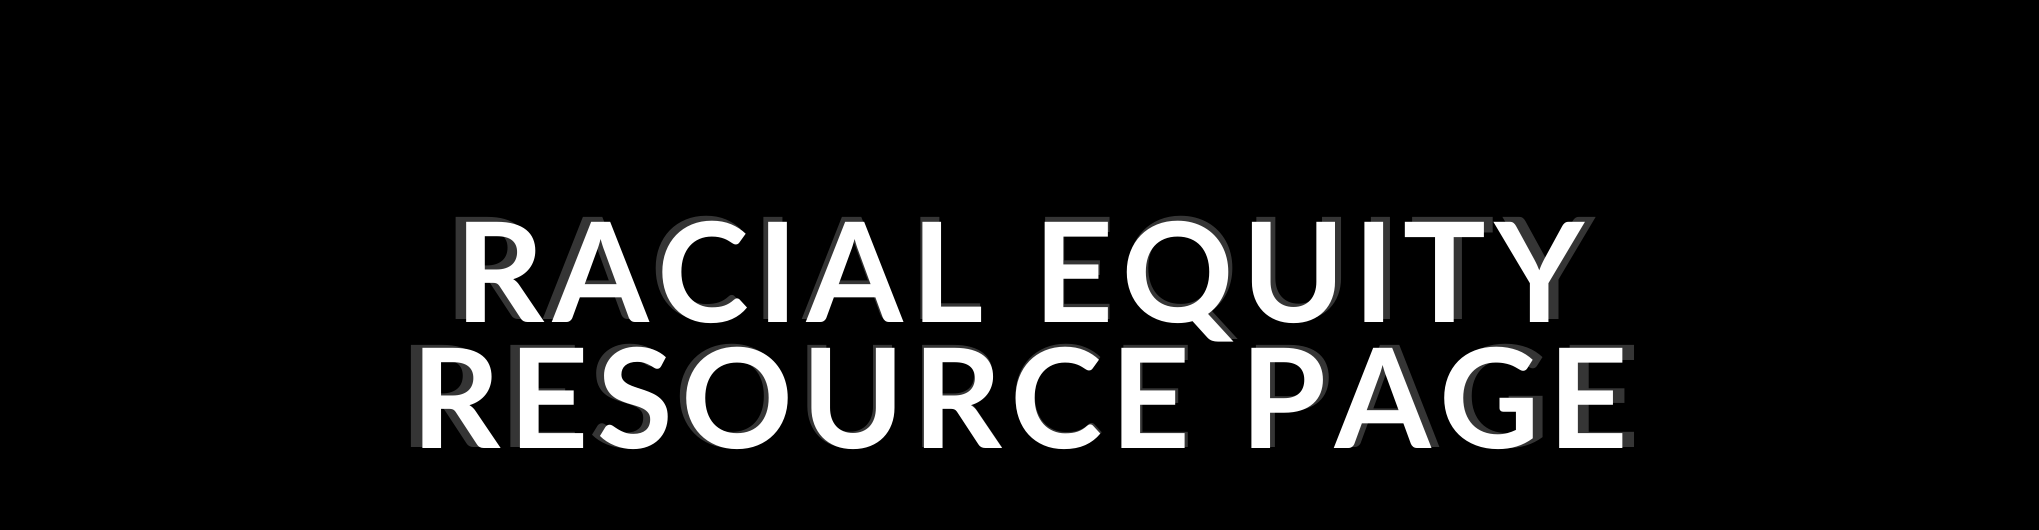 Racial Equity Resource Page Banner